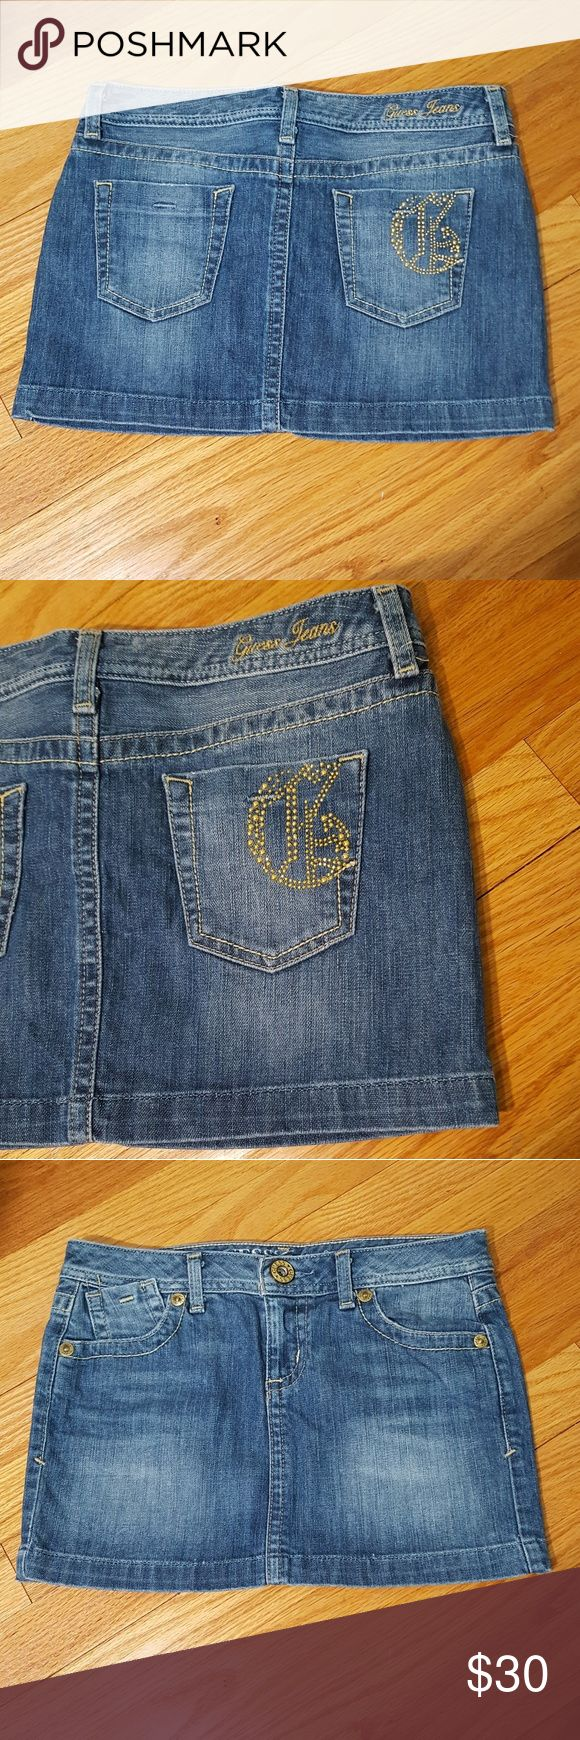 """Guess Jeans Light Denim Mini Skirt Gold Logo 26 Guess Jeans light denim mini skirt. Size 26. Excellent condition. Gorgeous gold studded Guess 'G' logo on back pocket. Yellow stitching throughout, large Guess button, sandblasted finish. Measures 28"""" waist, 11"""" length. 99% cotton, 1% lycra for stretch and comfort. This denim mini skirt will be your go-to this Summer! Guess Skirts Mini"""